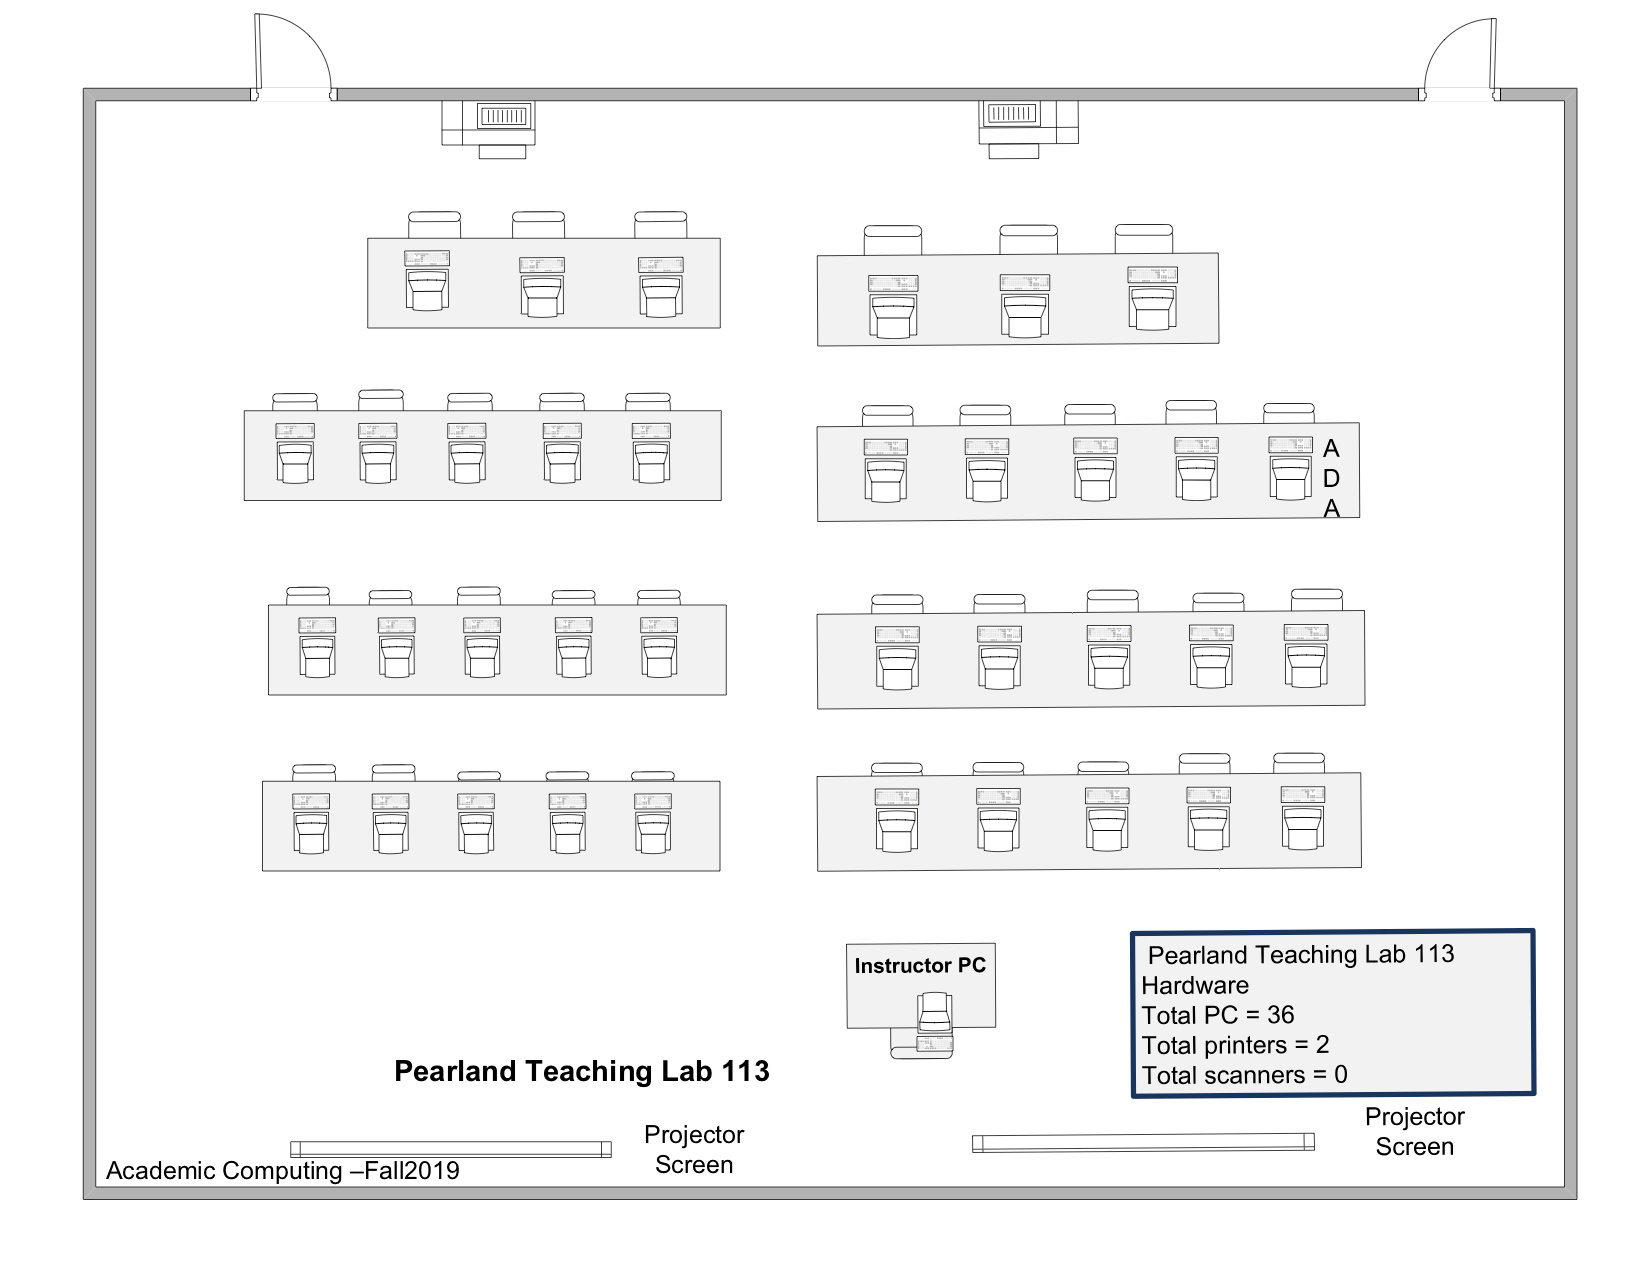 pearland p113 layout